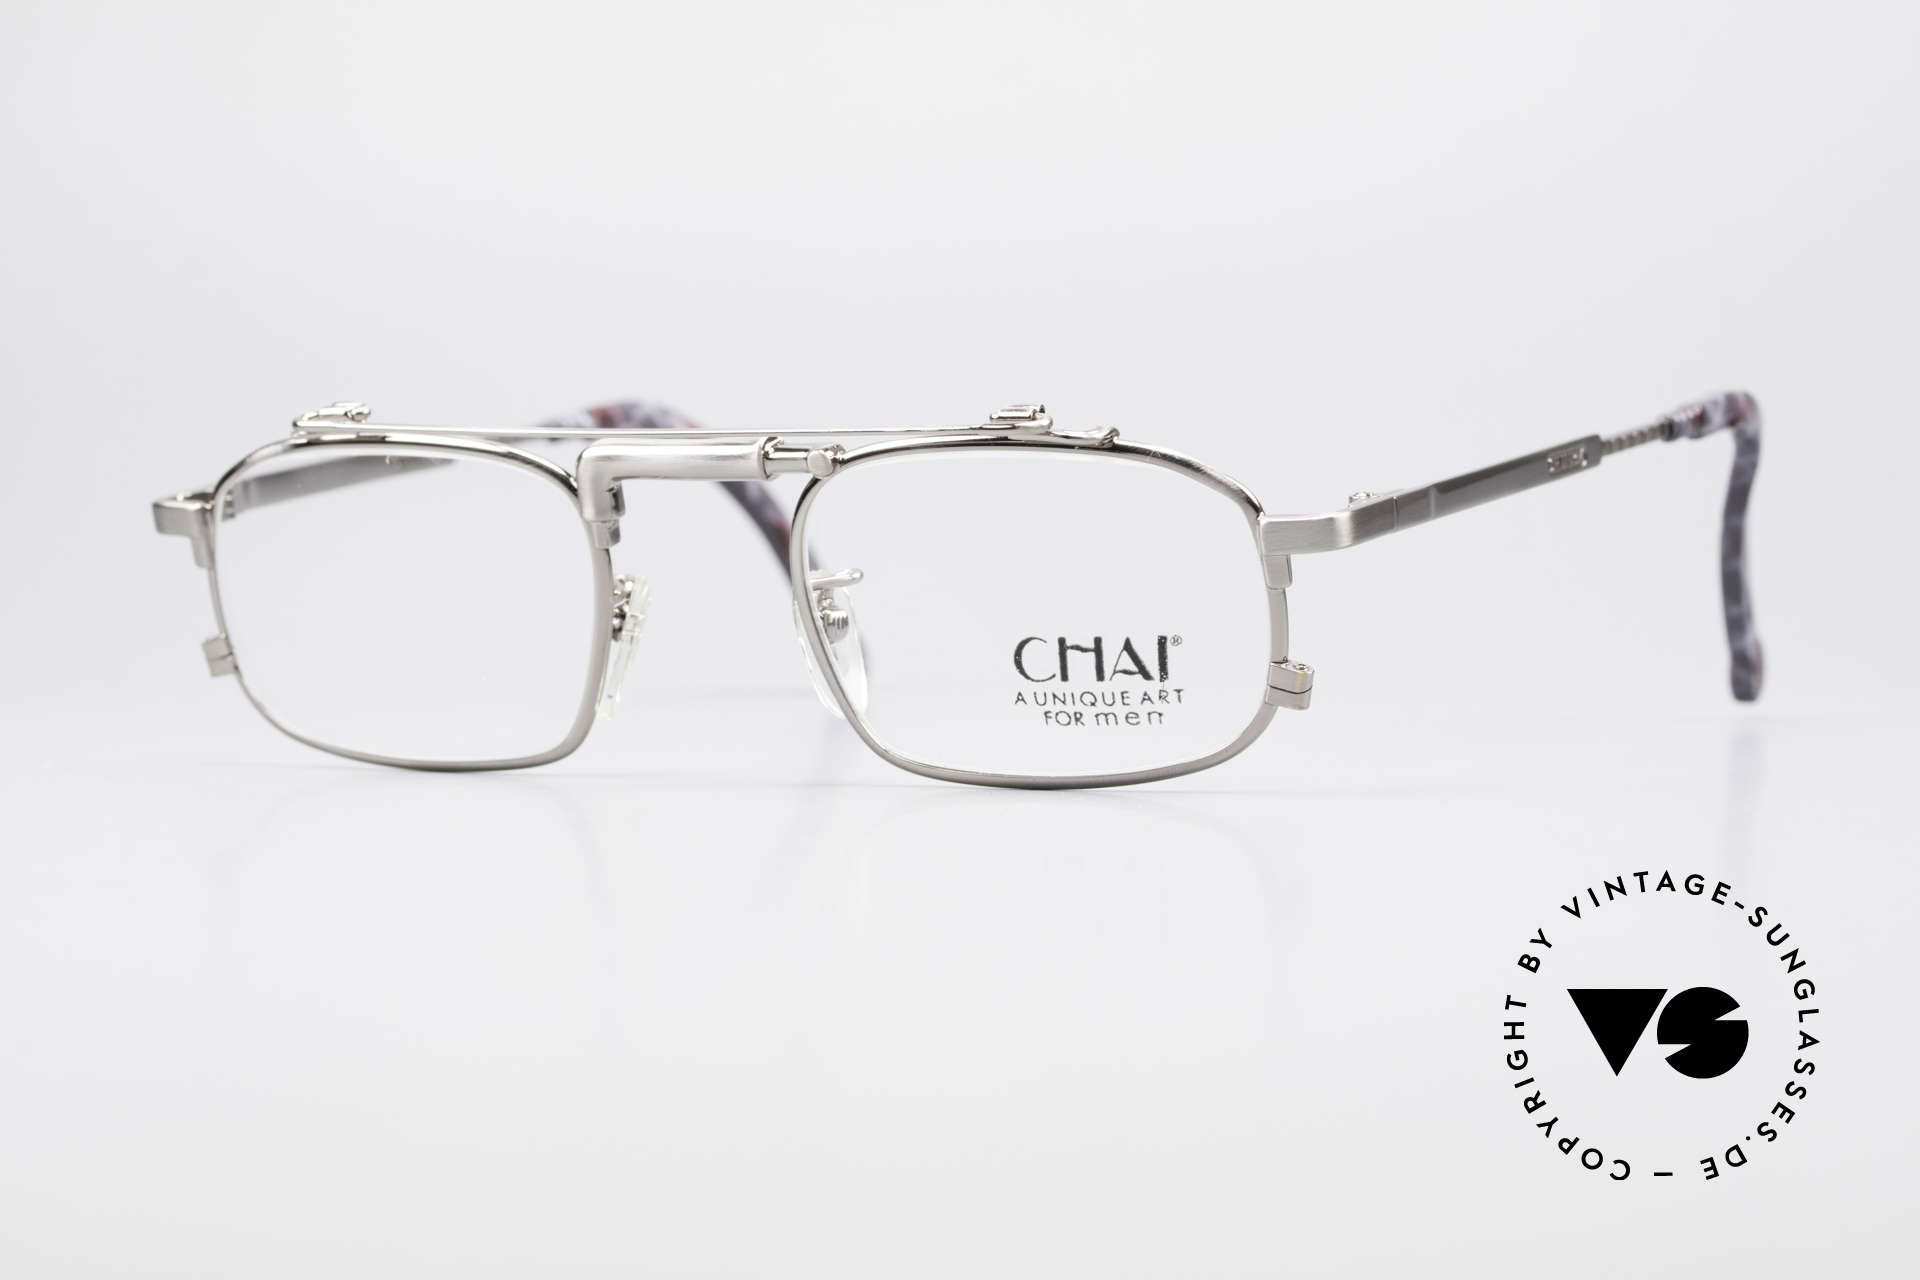 Chai No4 Square Industrial Vintage Eyeglasses, extraordinary VINTAGE eyeglasses-frame by CHAI, Made for Men and Women